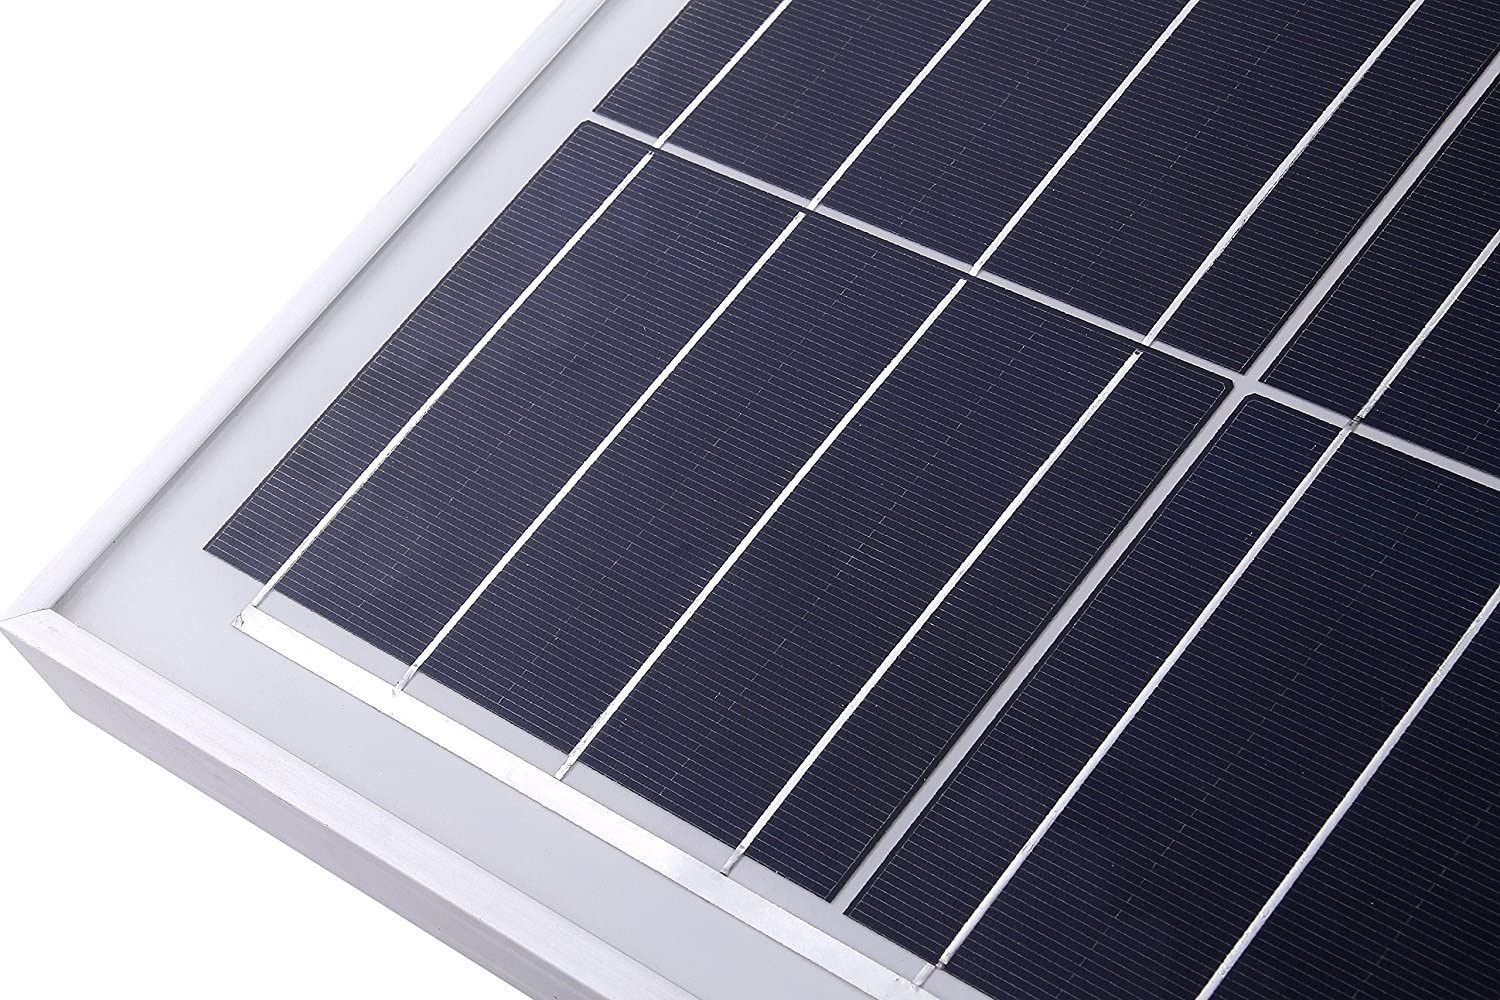 LCS 100 Watt 12 Volt Polycrystalline Solar Panel 100W 12 Volts Battery Charging